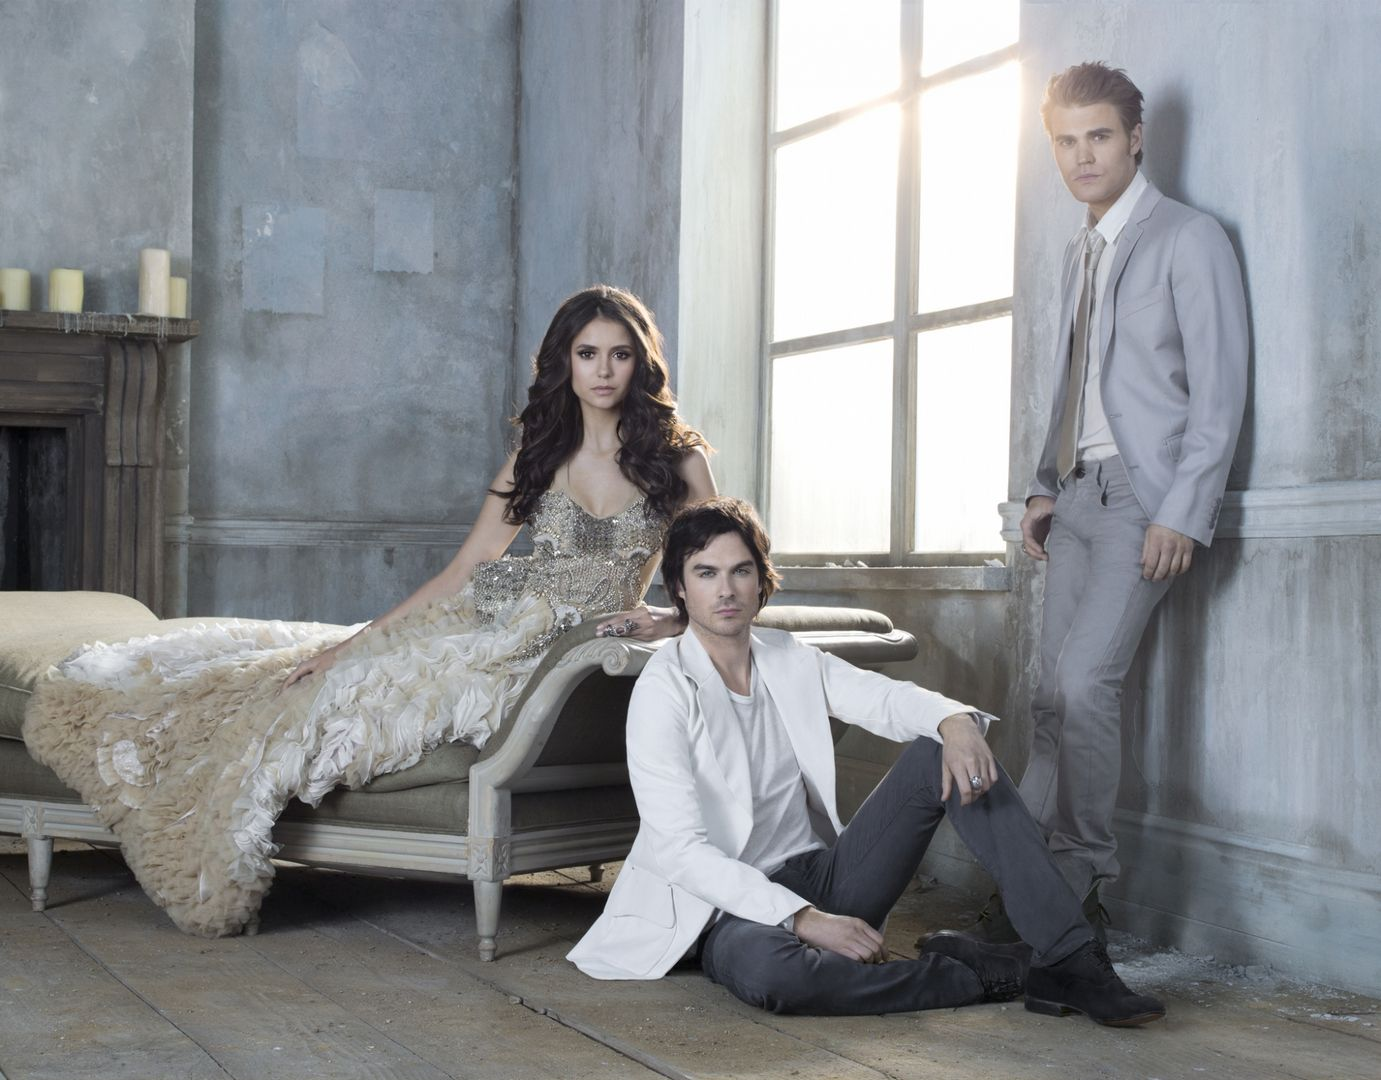 Damon salvatore the vire diaries season 3 cast promotional